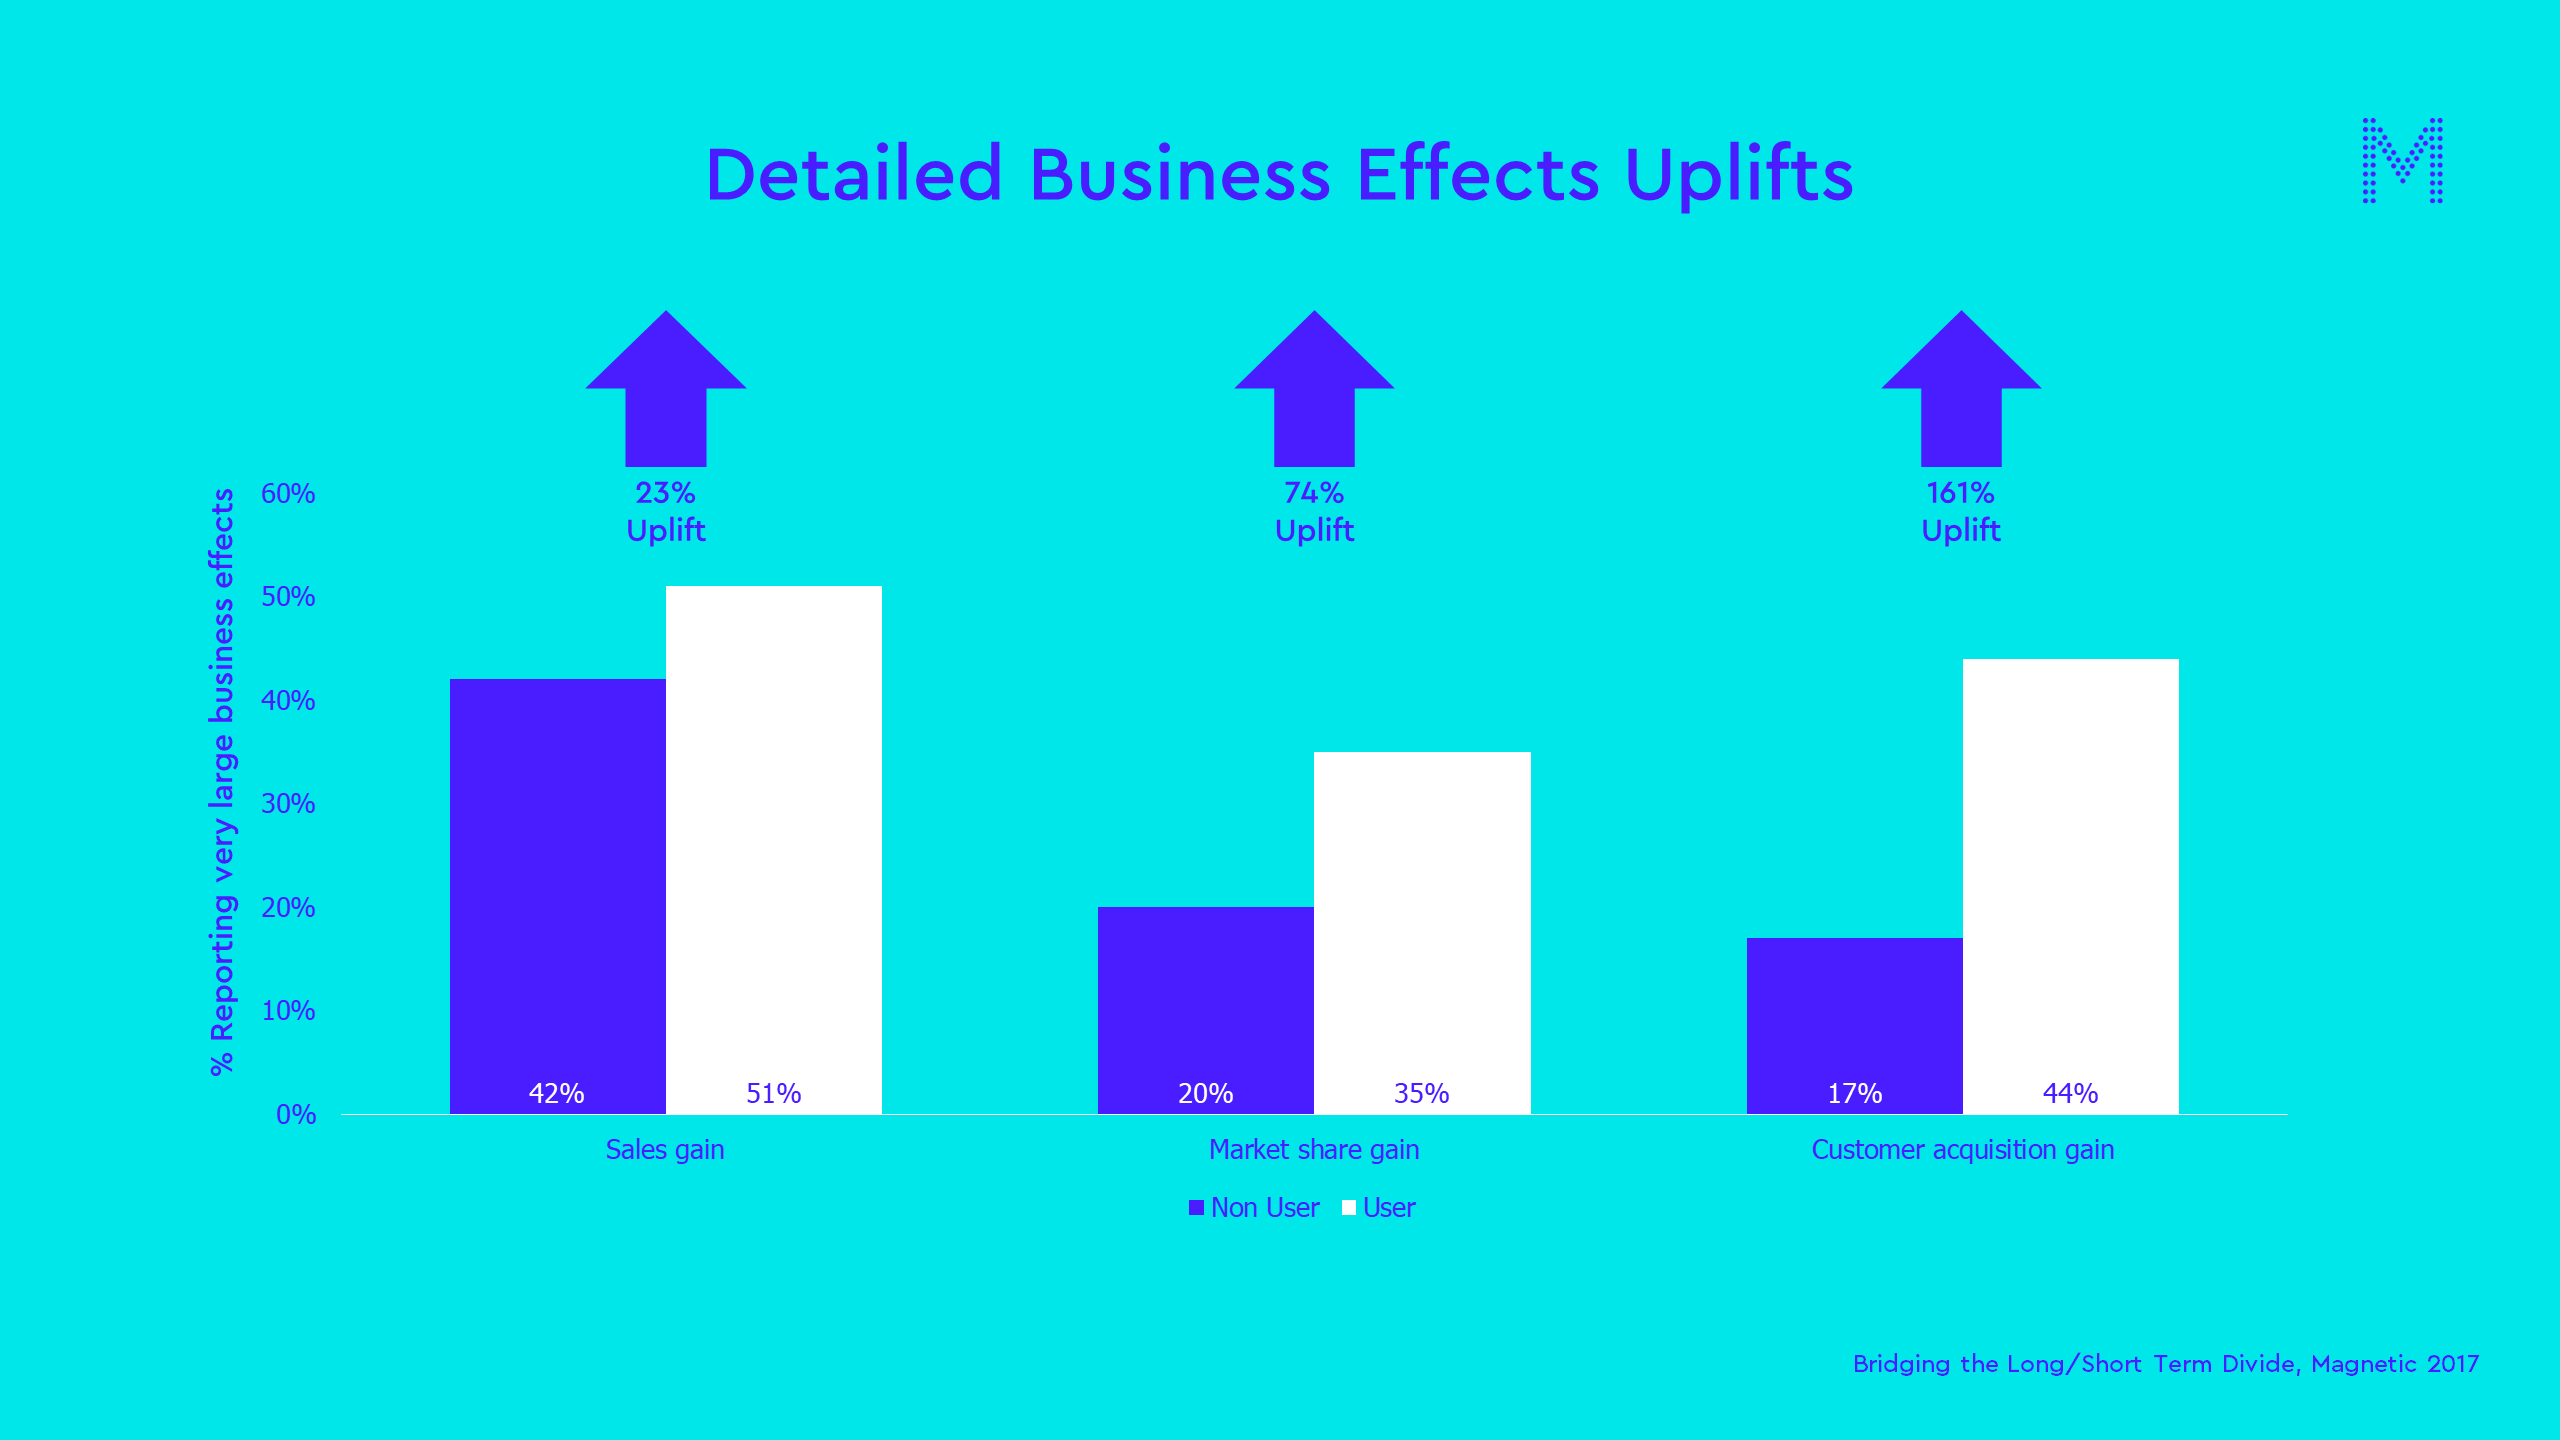 Detailed Business Effects Uplifts